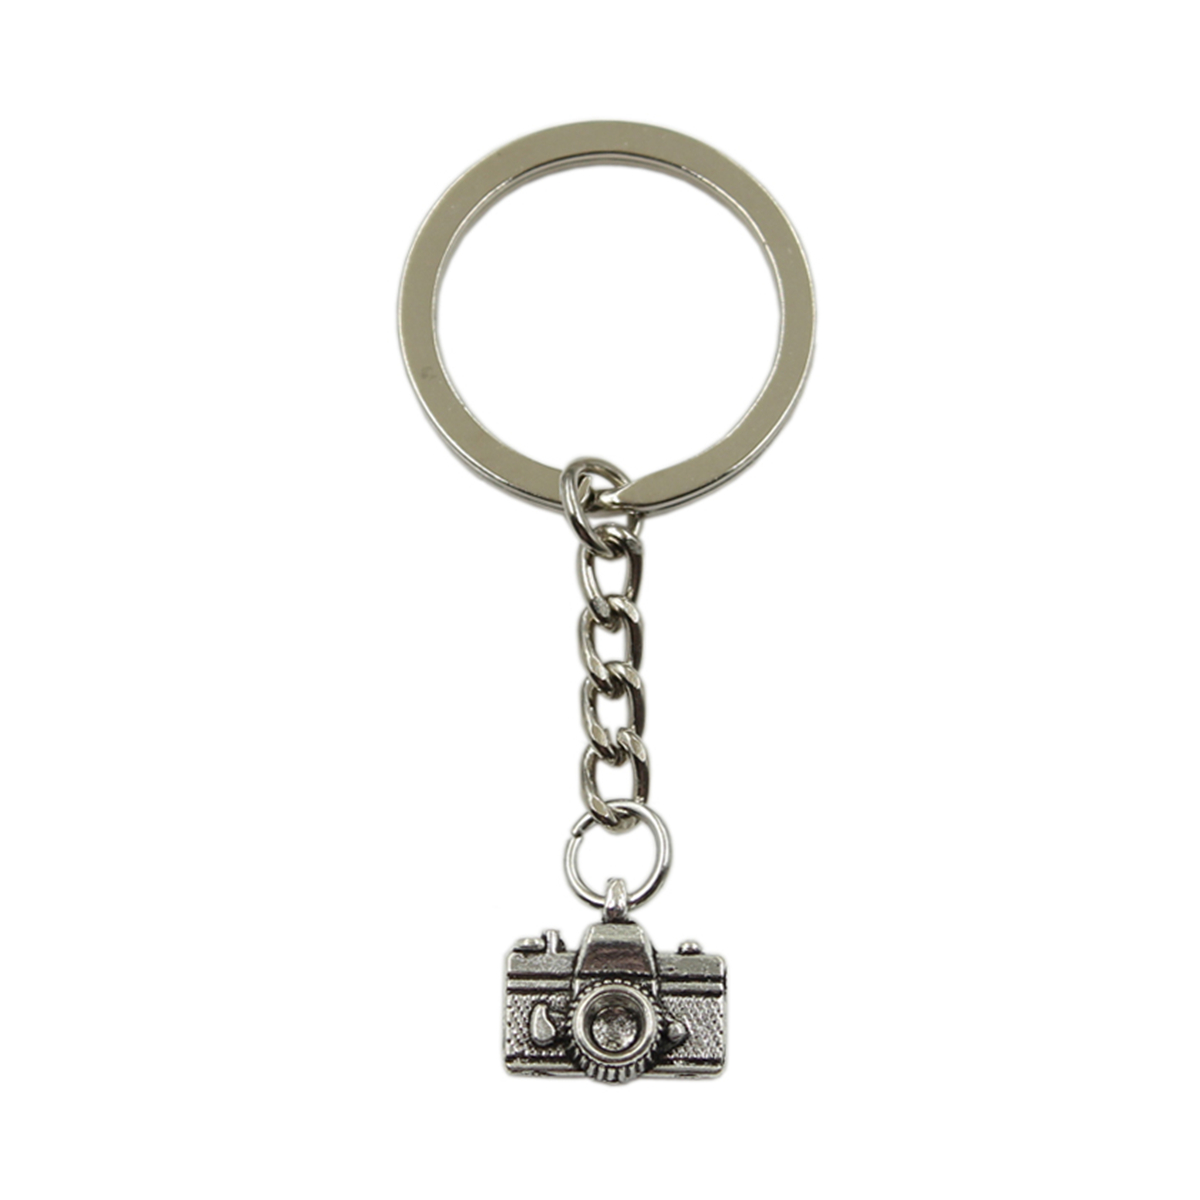 Factory Price Camera Pendant Key Ring Metal Chain Silver Color Men Car Gift Souvenirs Keychain Dropshipping